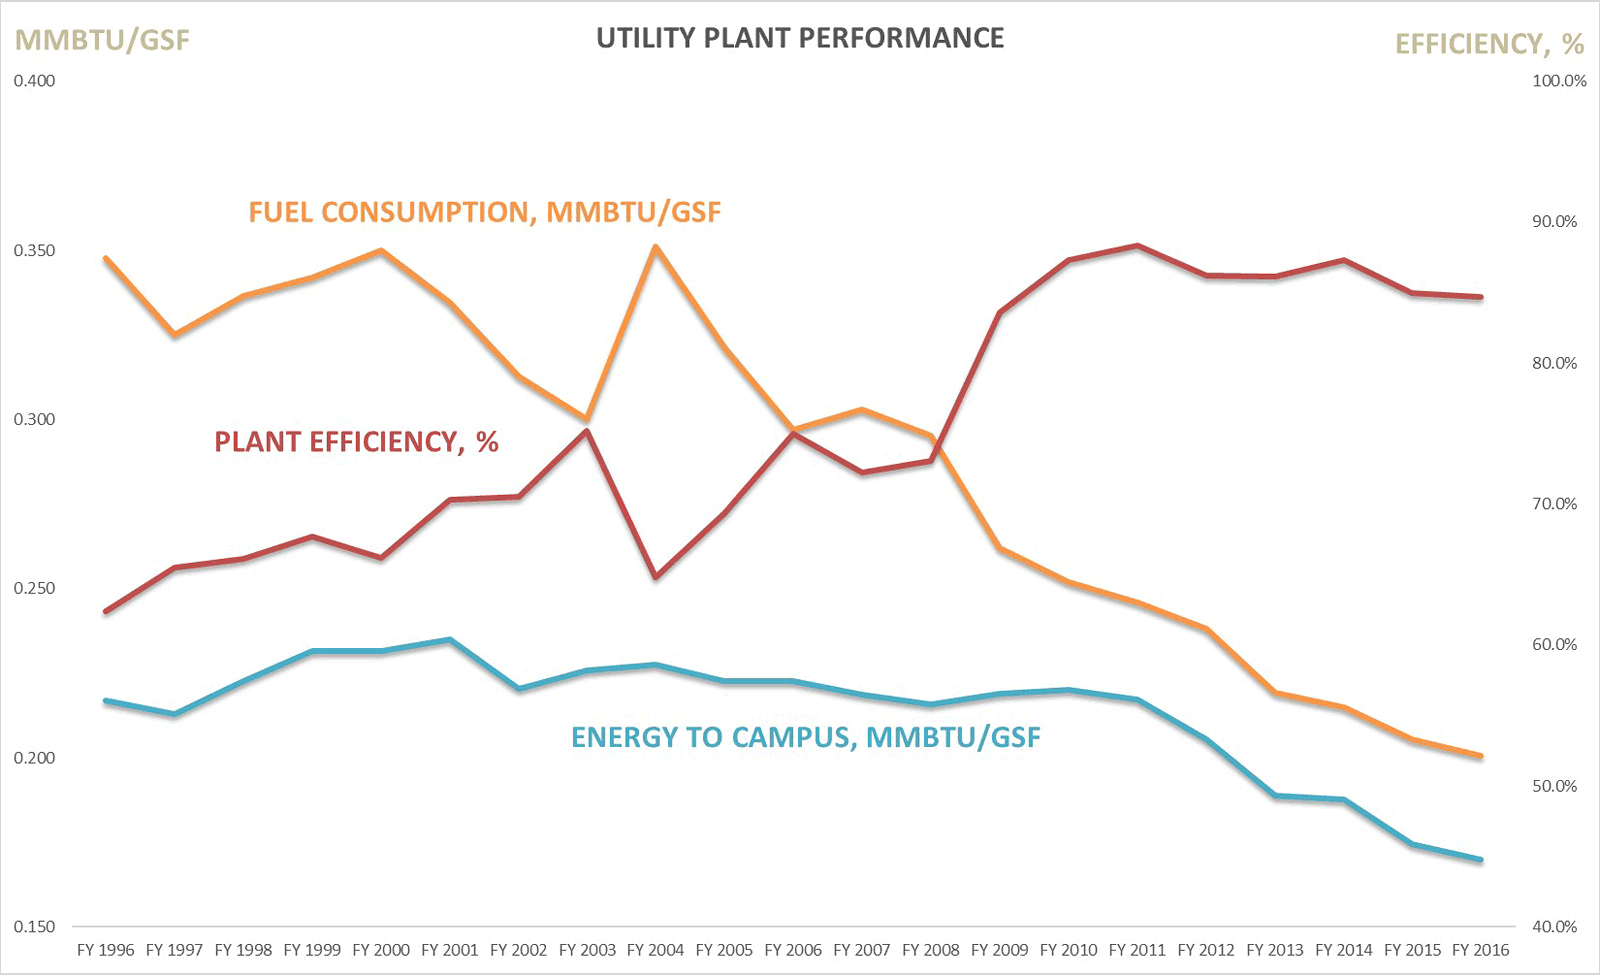 Utility Plant Performance Chart 2016